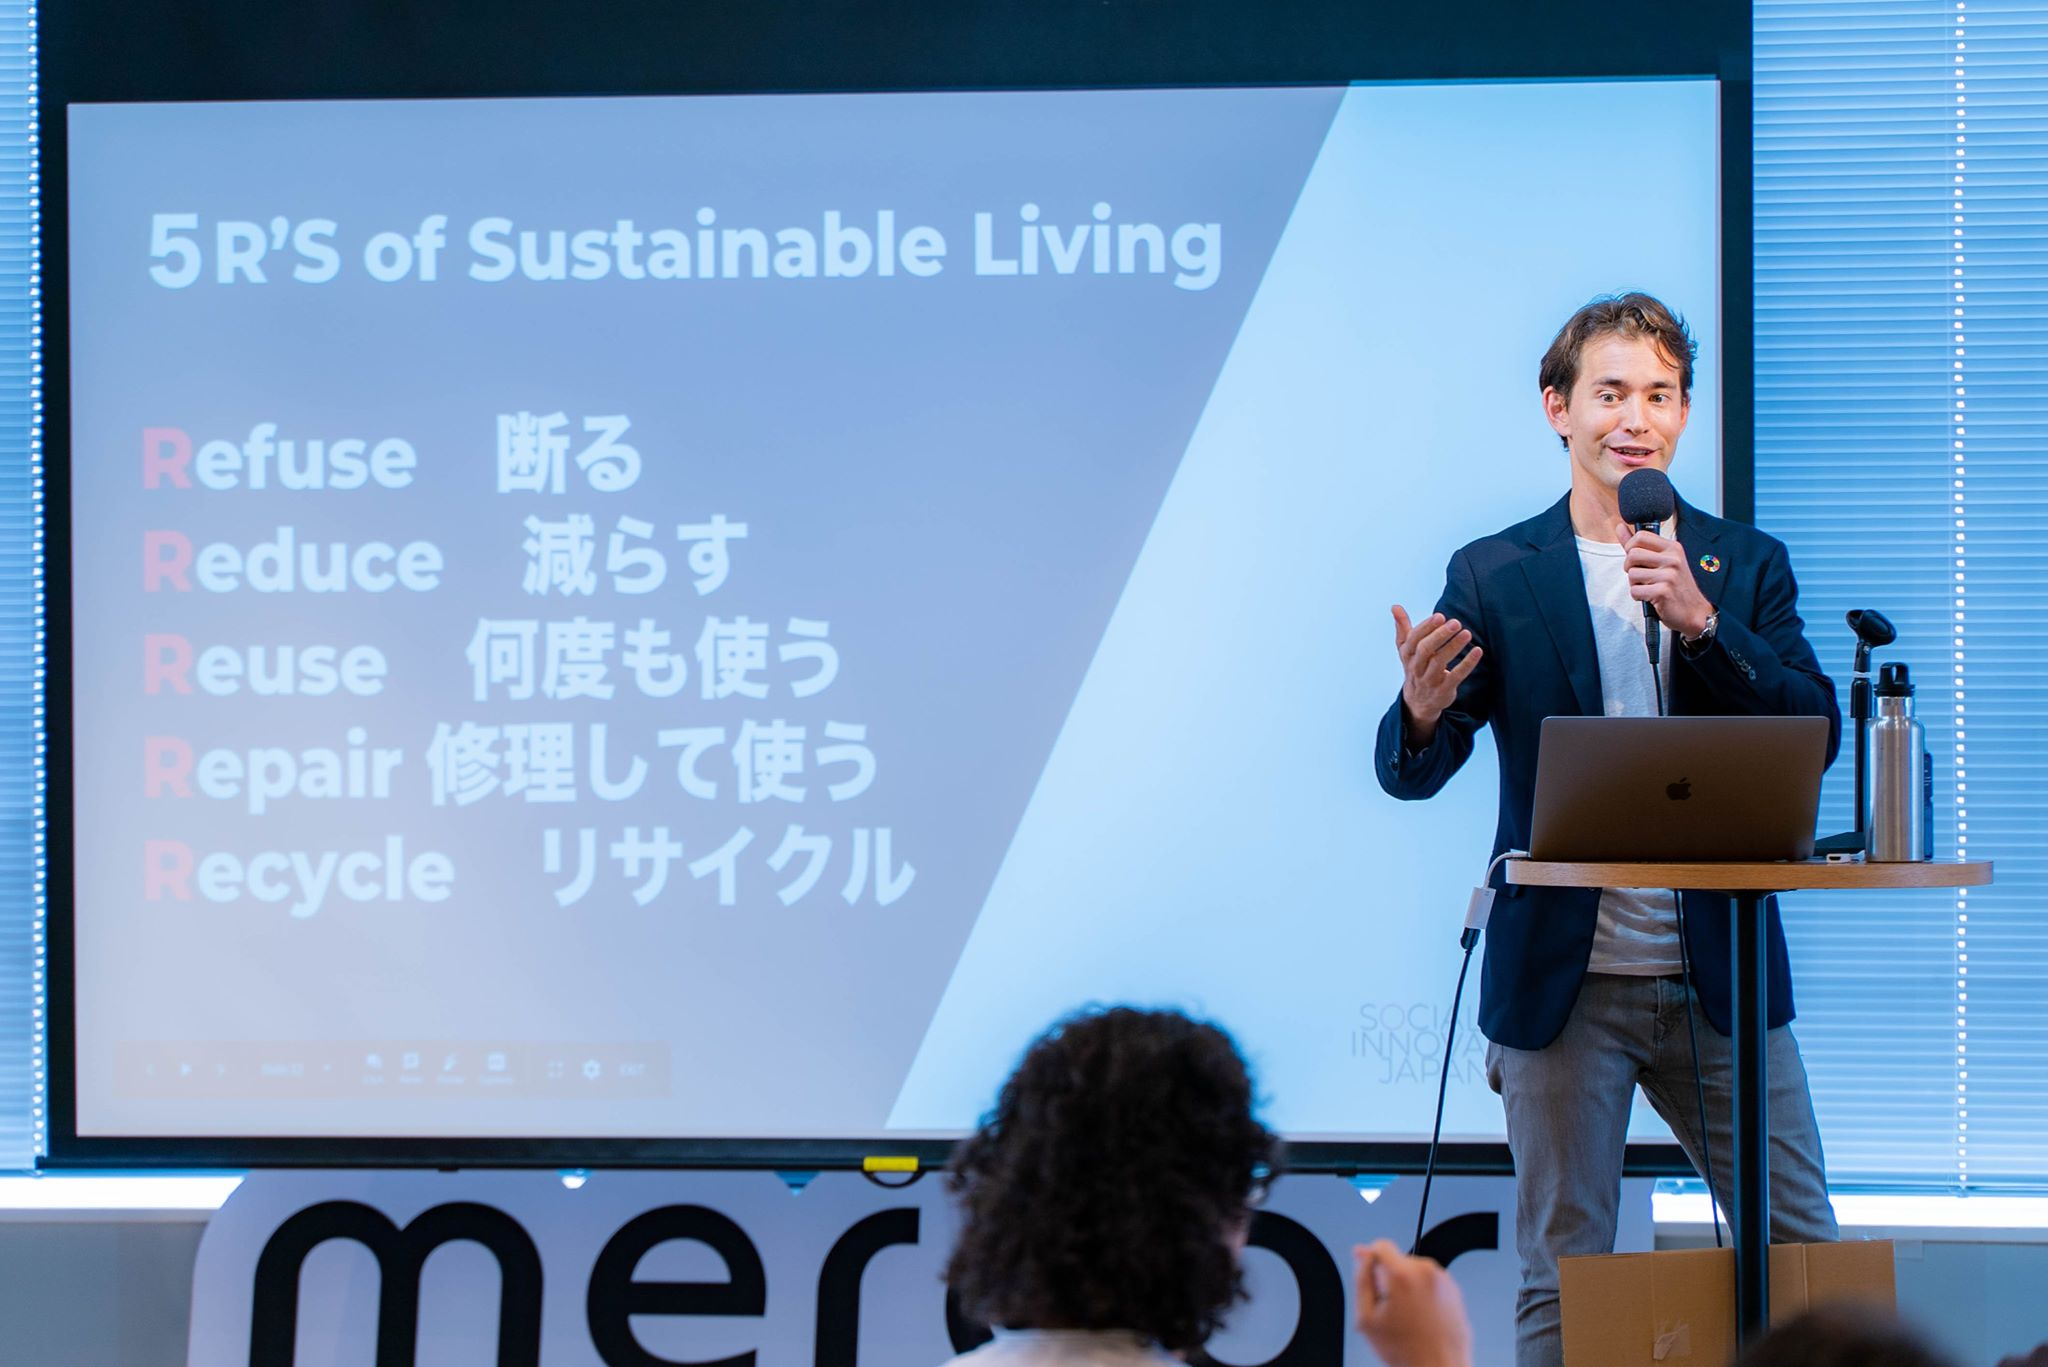 Social Innovation Japan Co-founder Robin Lewis Introduces the 5 R's of sustainable living